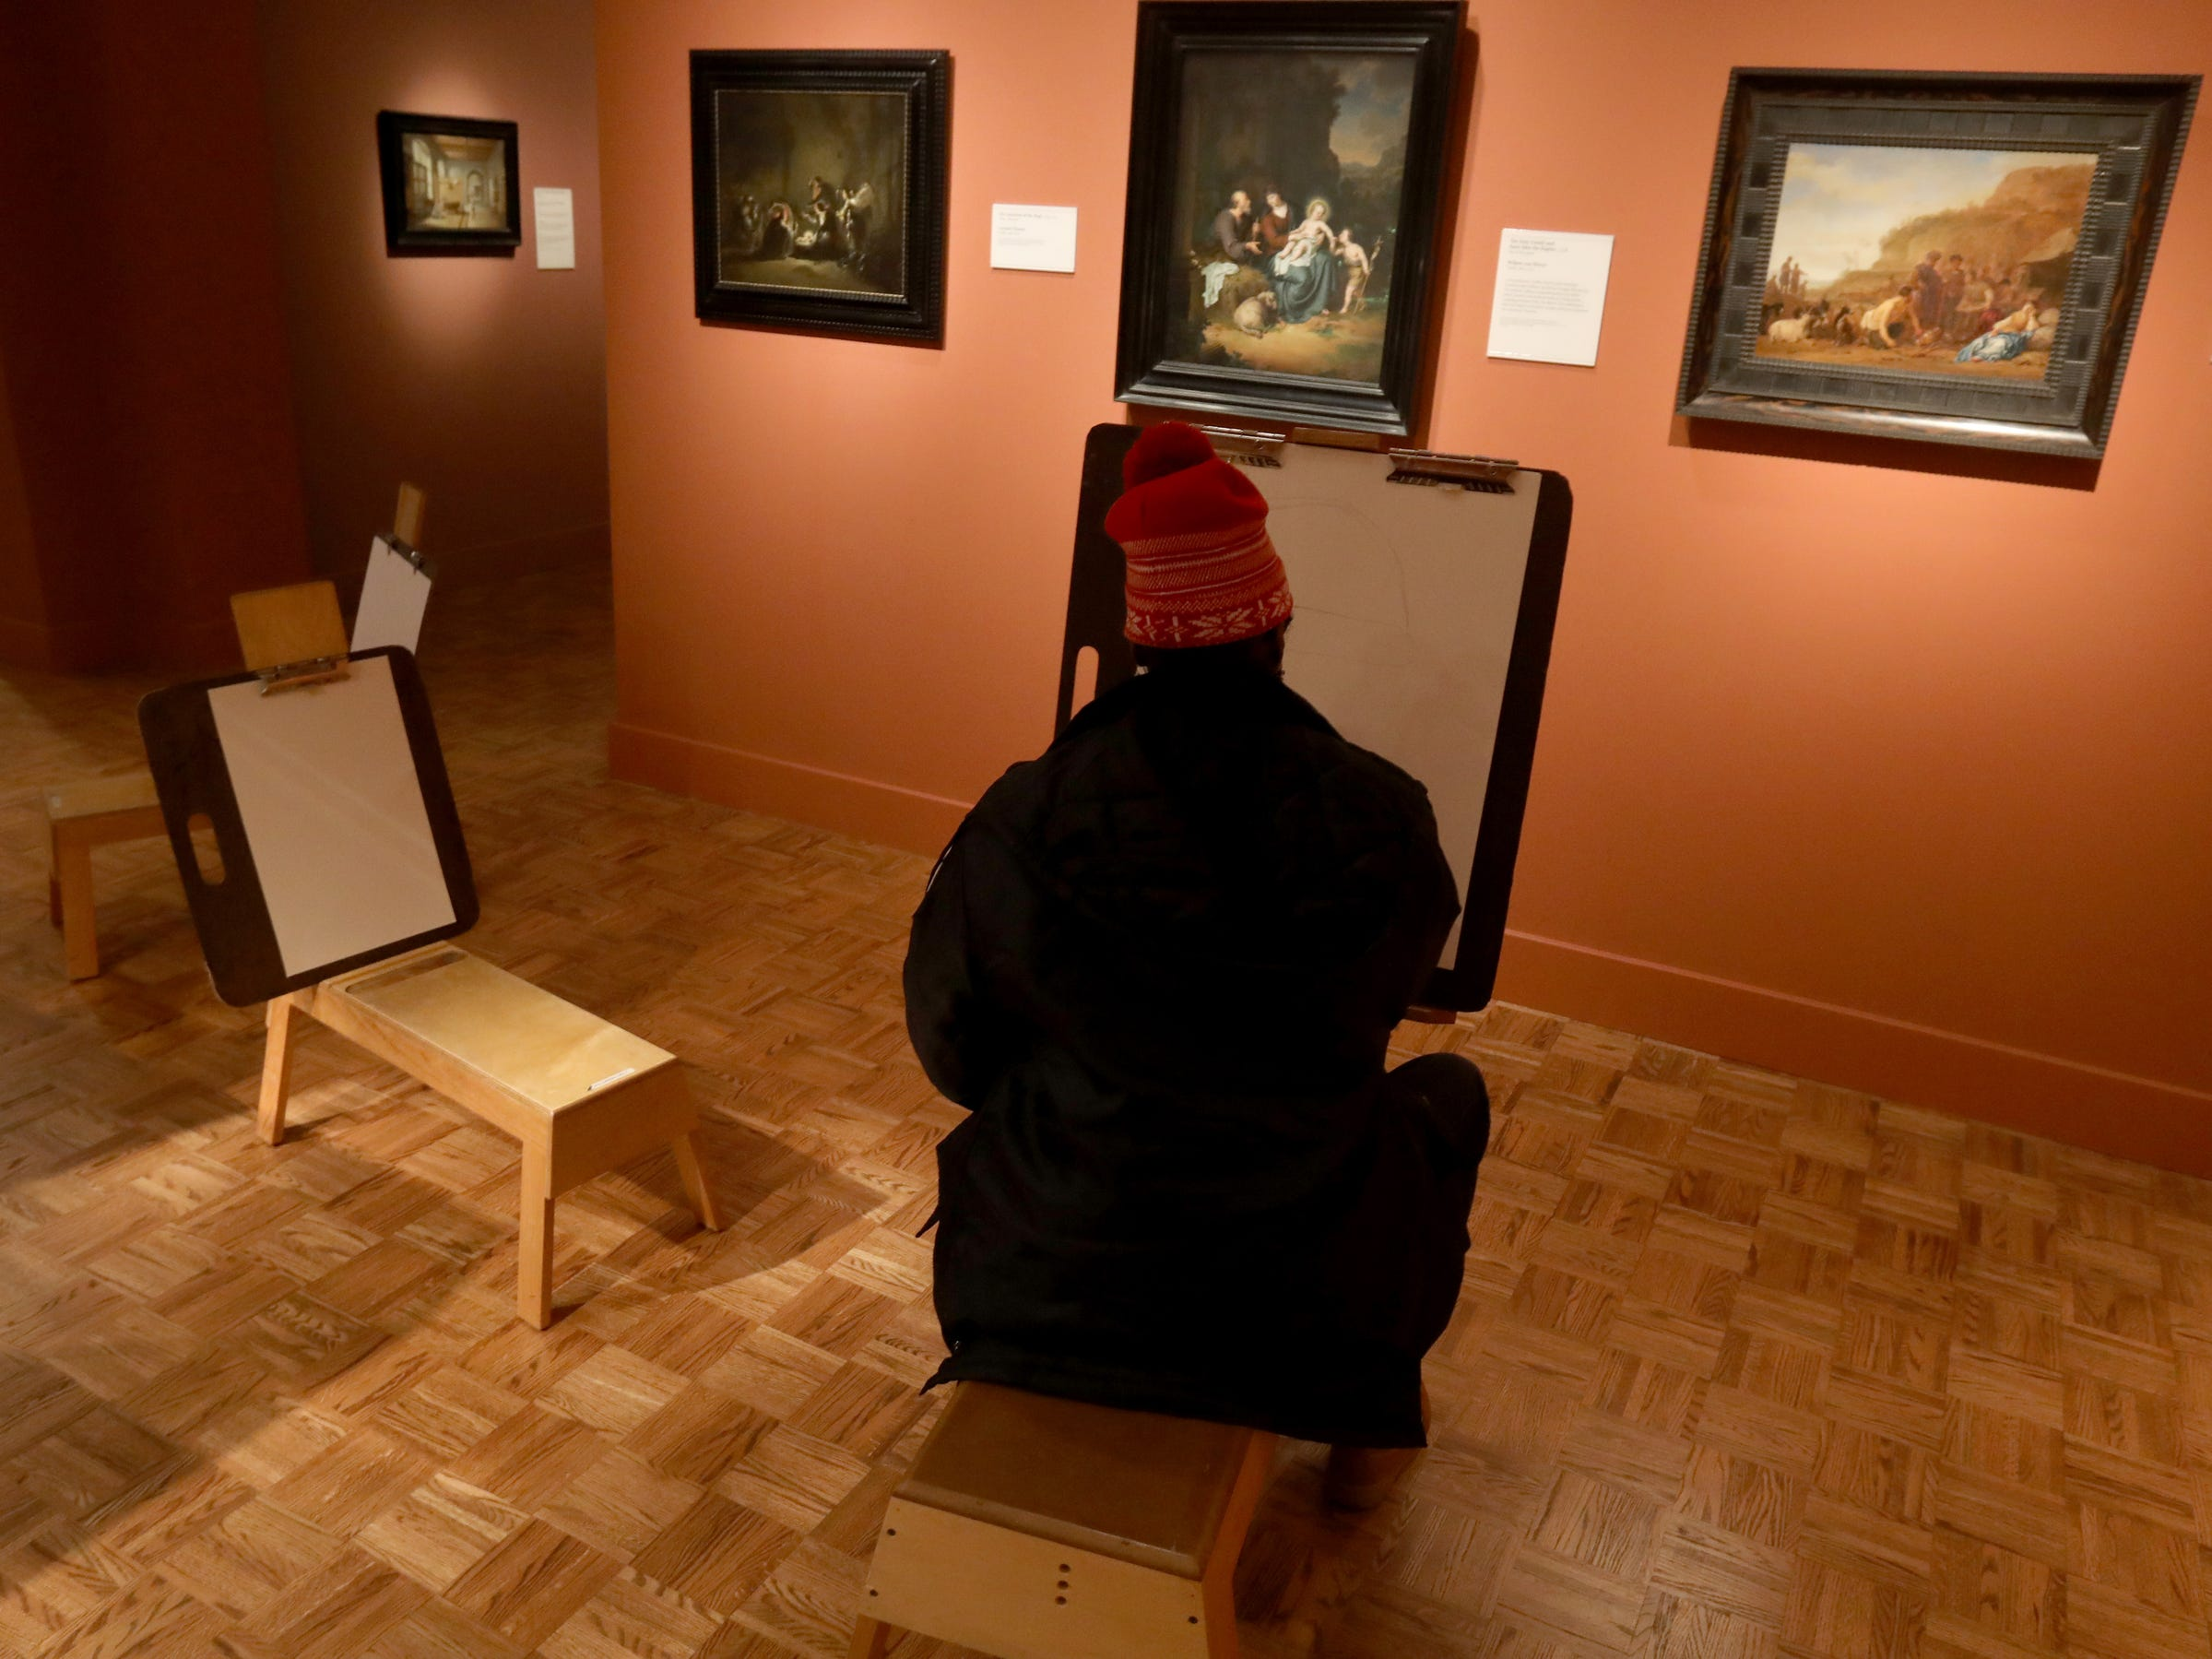 One of the activities during Noel Night at the Detroit Institute of Arts on in Detroit was drawing in the galleries at the European: Dutch Golden Age on Saturday, December 1, 2018.